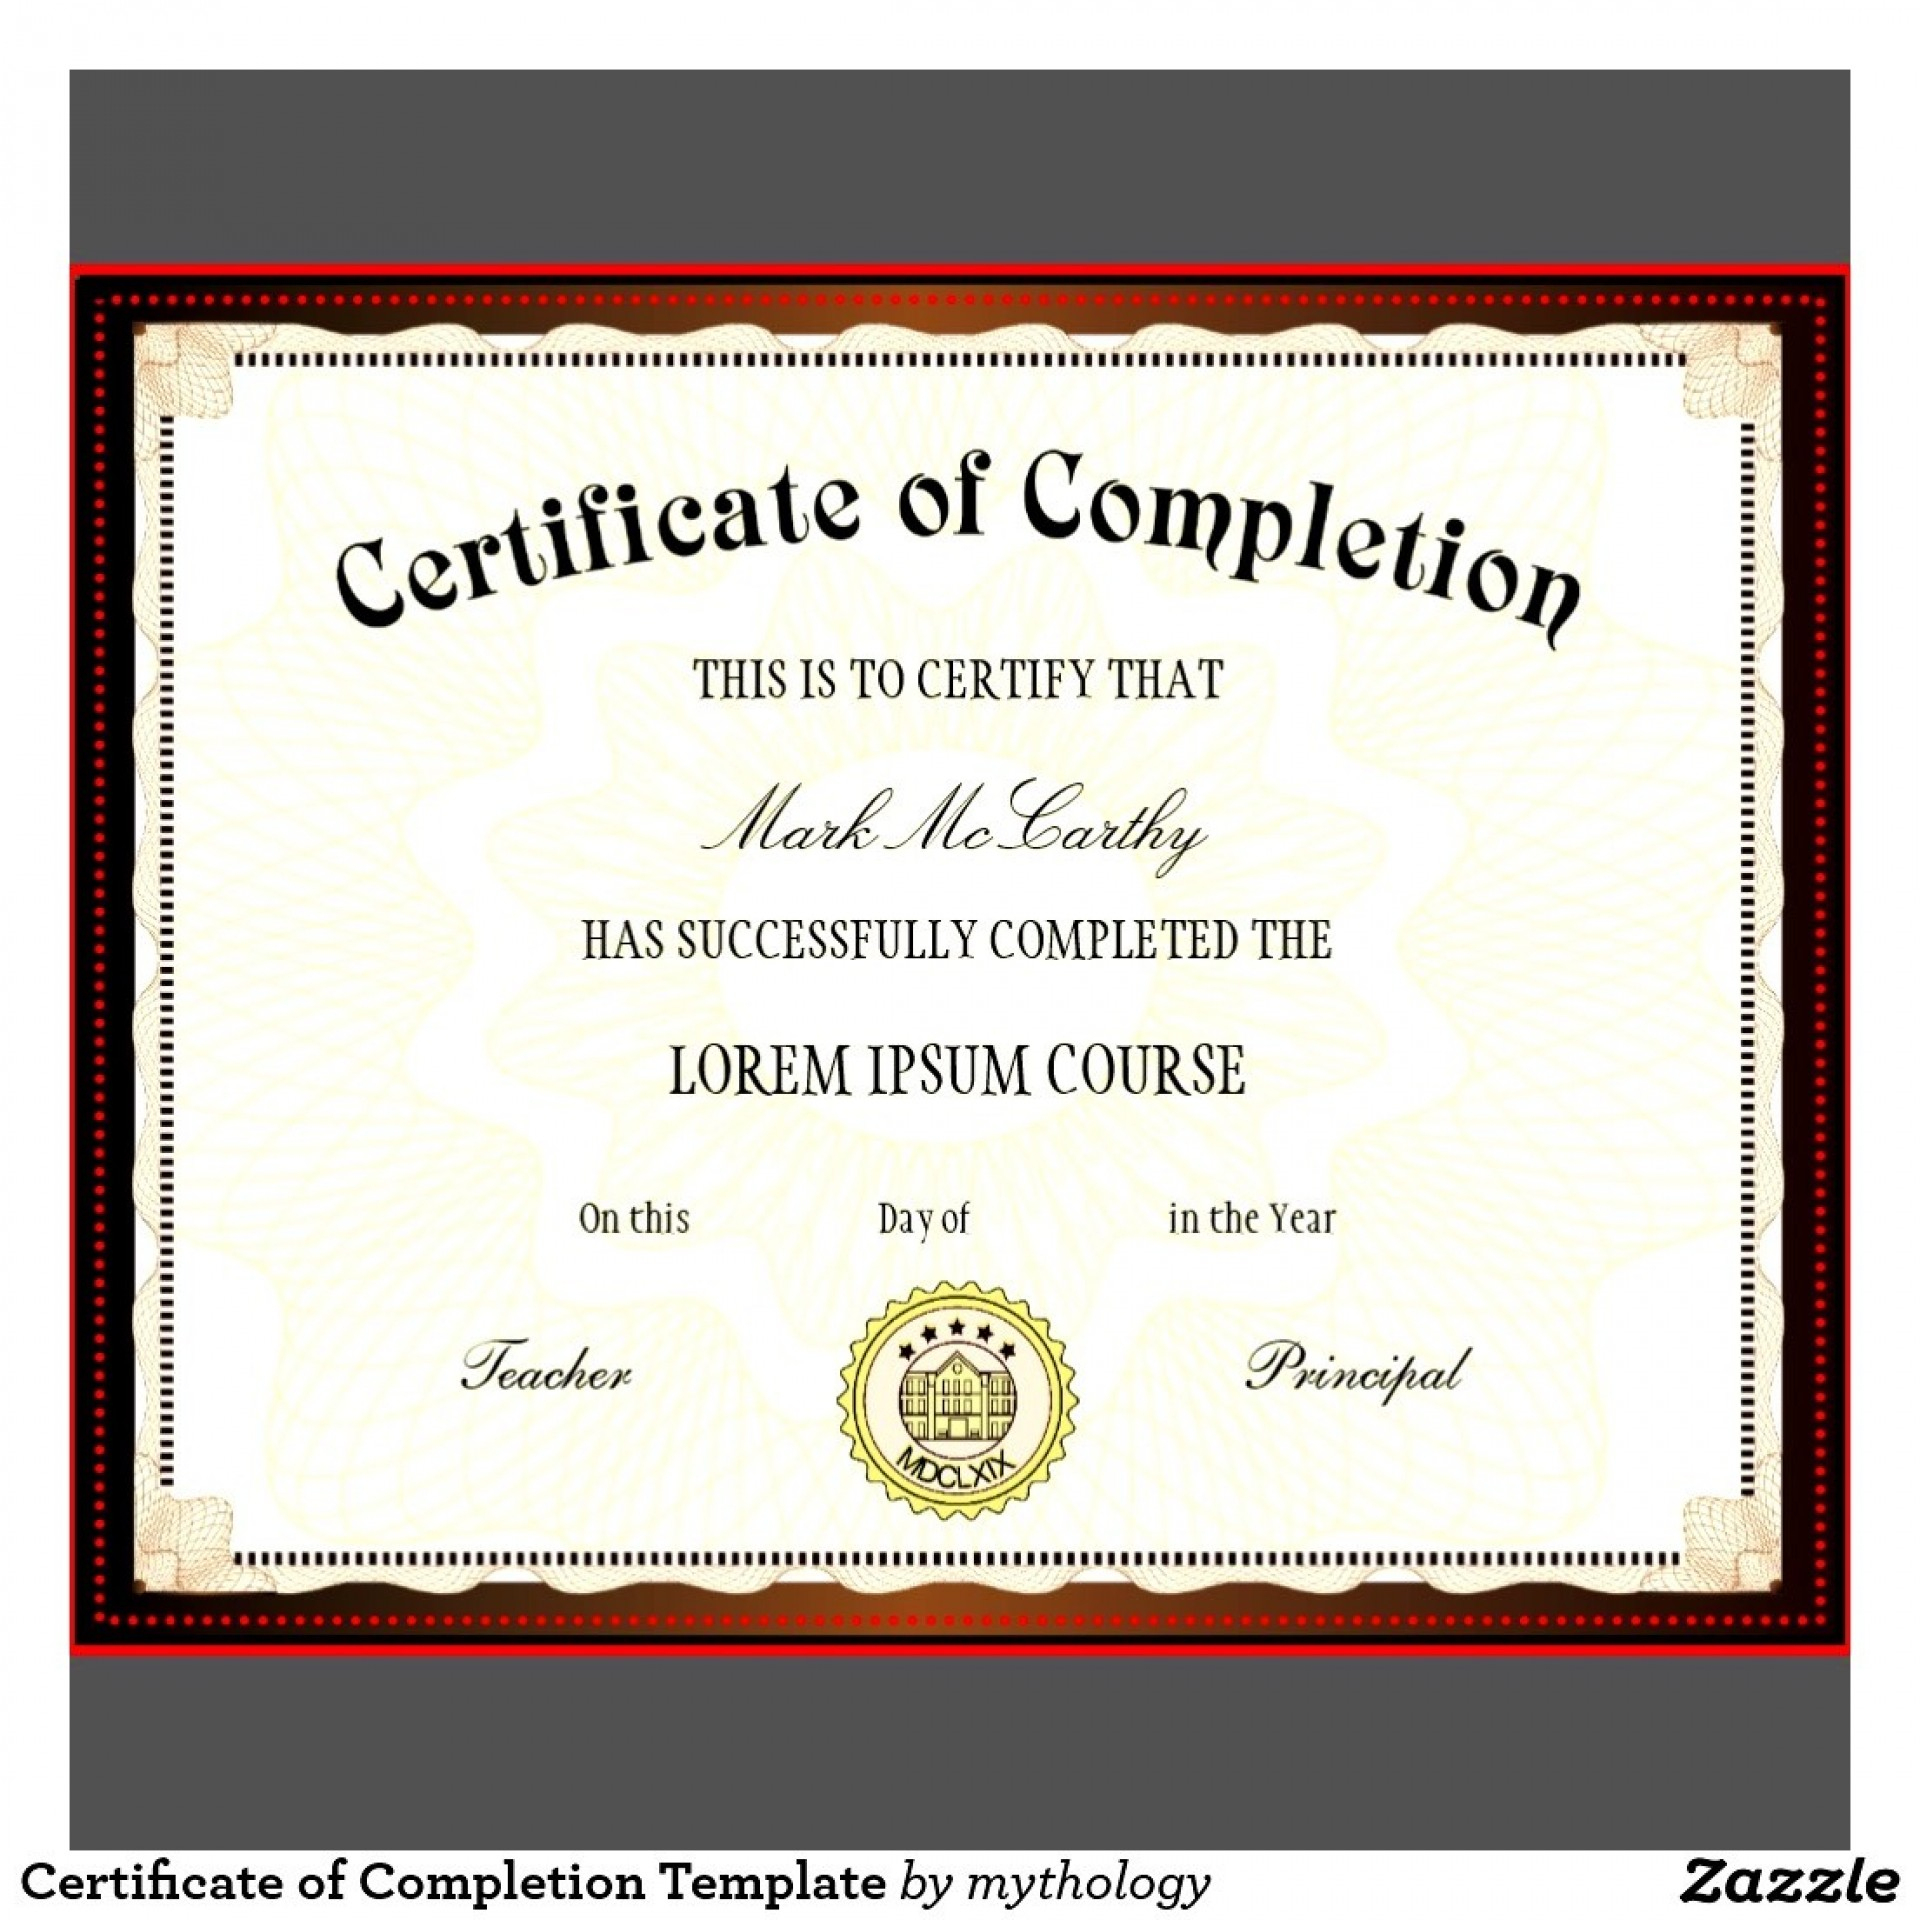 001 Certificate Of Completion Template Free ~ Ulyssesroom - Certificate Of Completion Template Free Printable